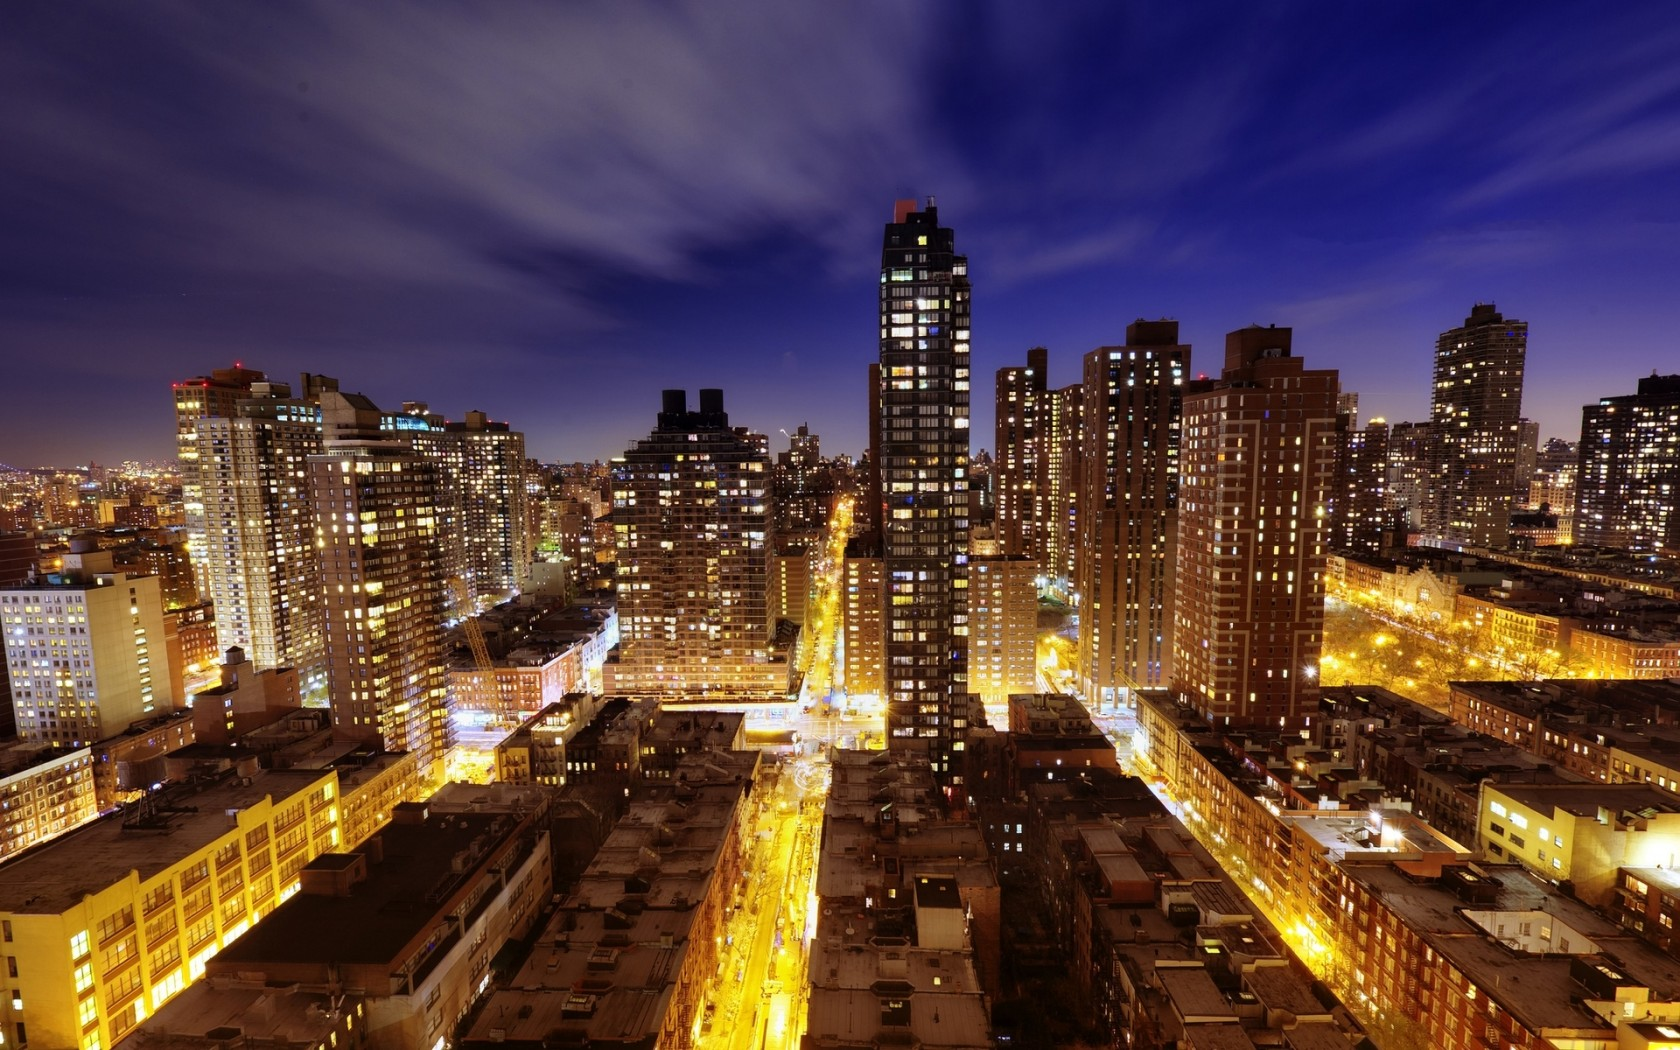 New York skyscrapers at night   Full HD and Widescreen Wallpapers 1680x1050